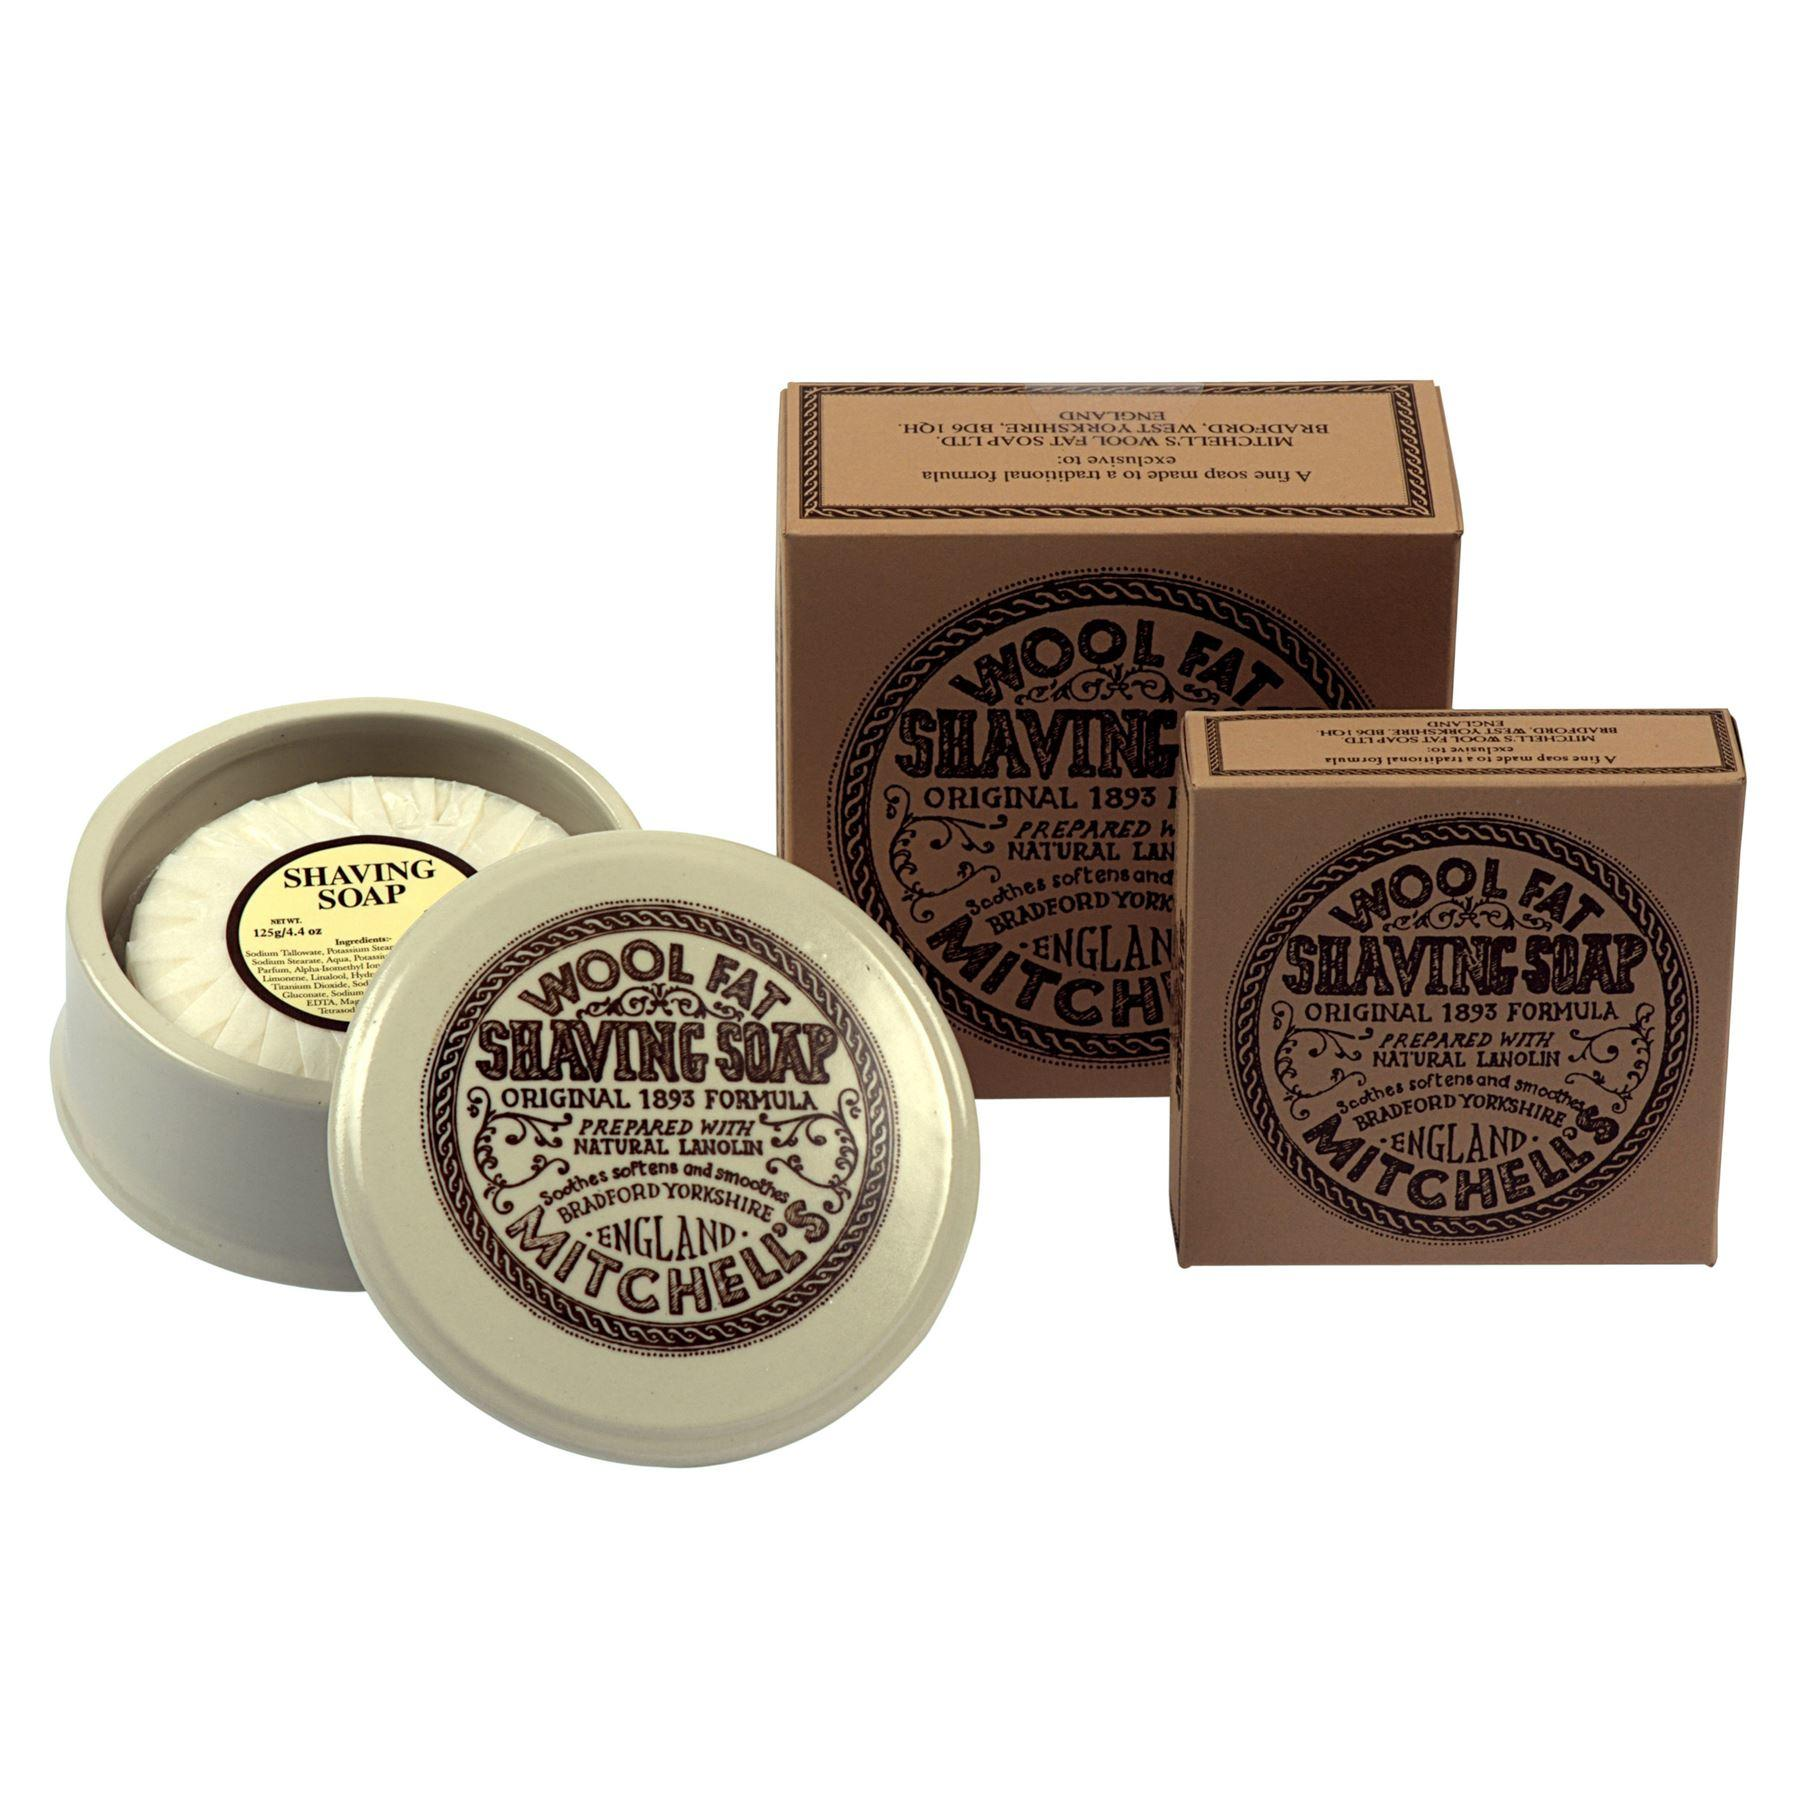 Mitchells Ceramic Shaving Bowl, Soap and Additional Boxed Lanolin Shaving Soap